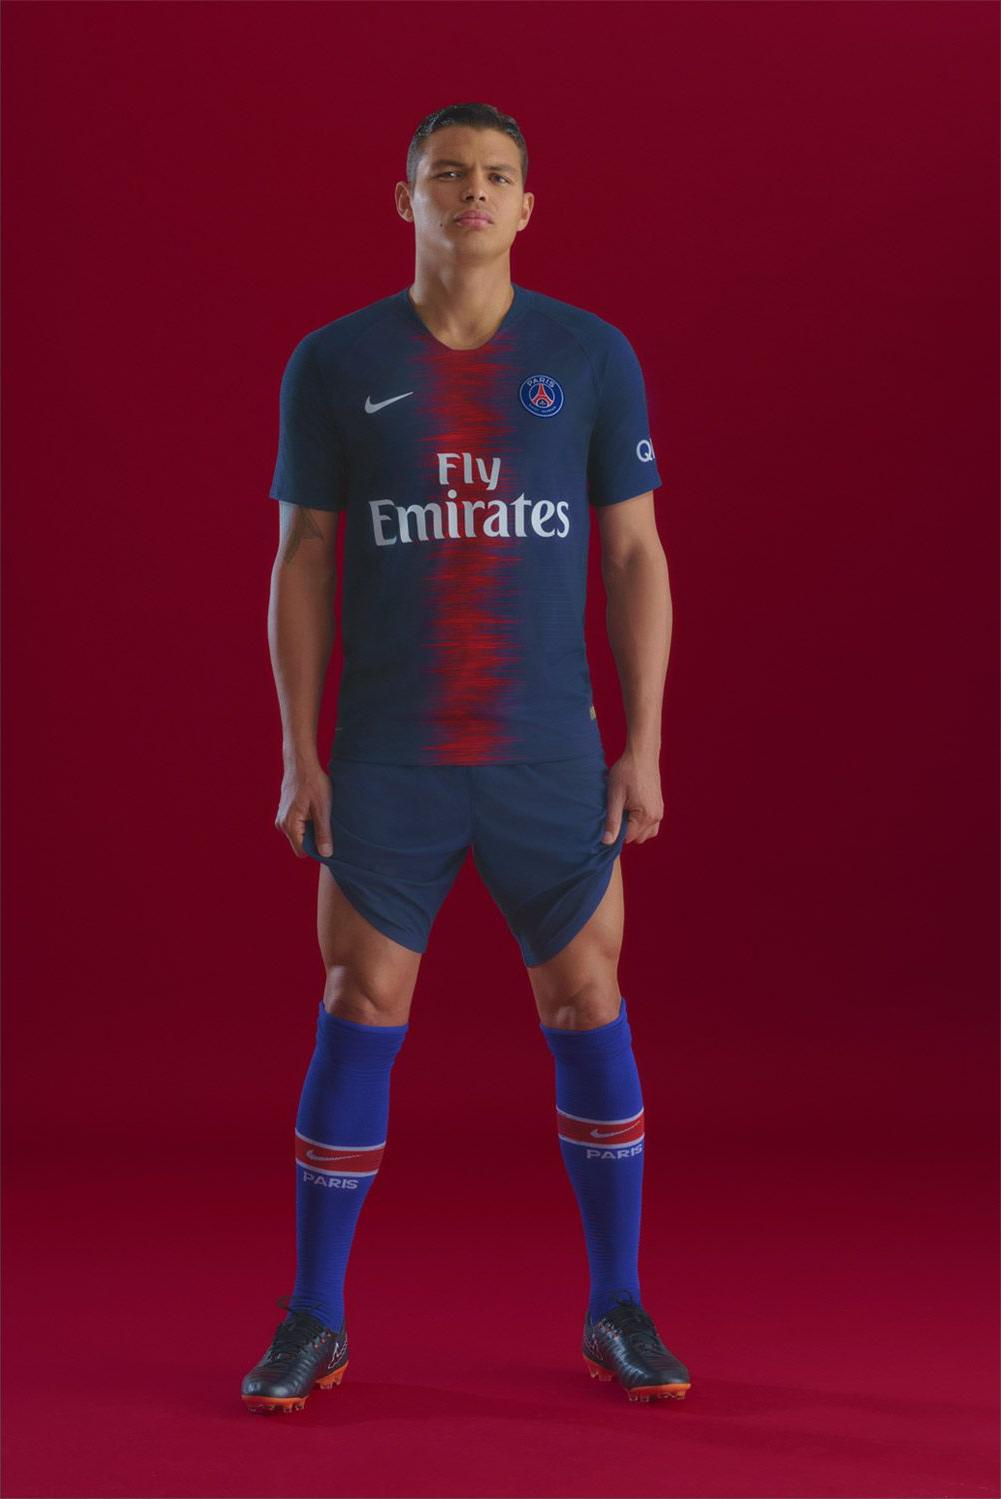 437cf2422fbef8 Shorts and socks in the same color as the shirt complete the Paris Saint-Germain  18-19 home kit.